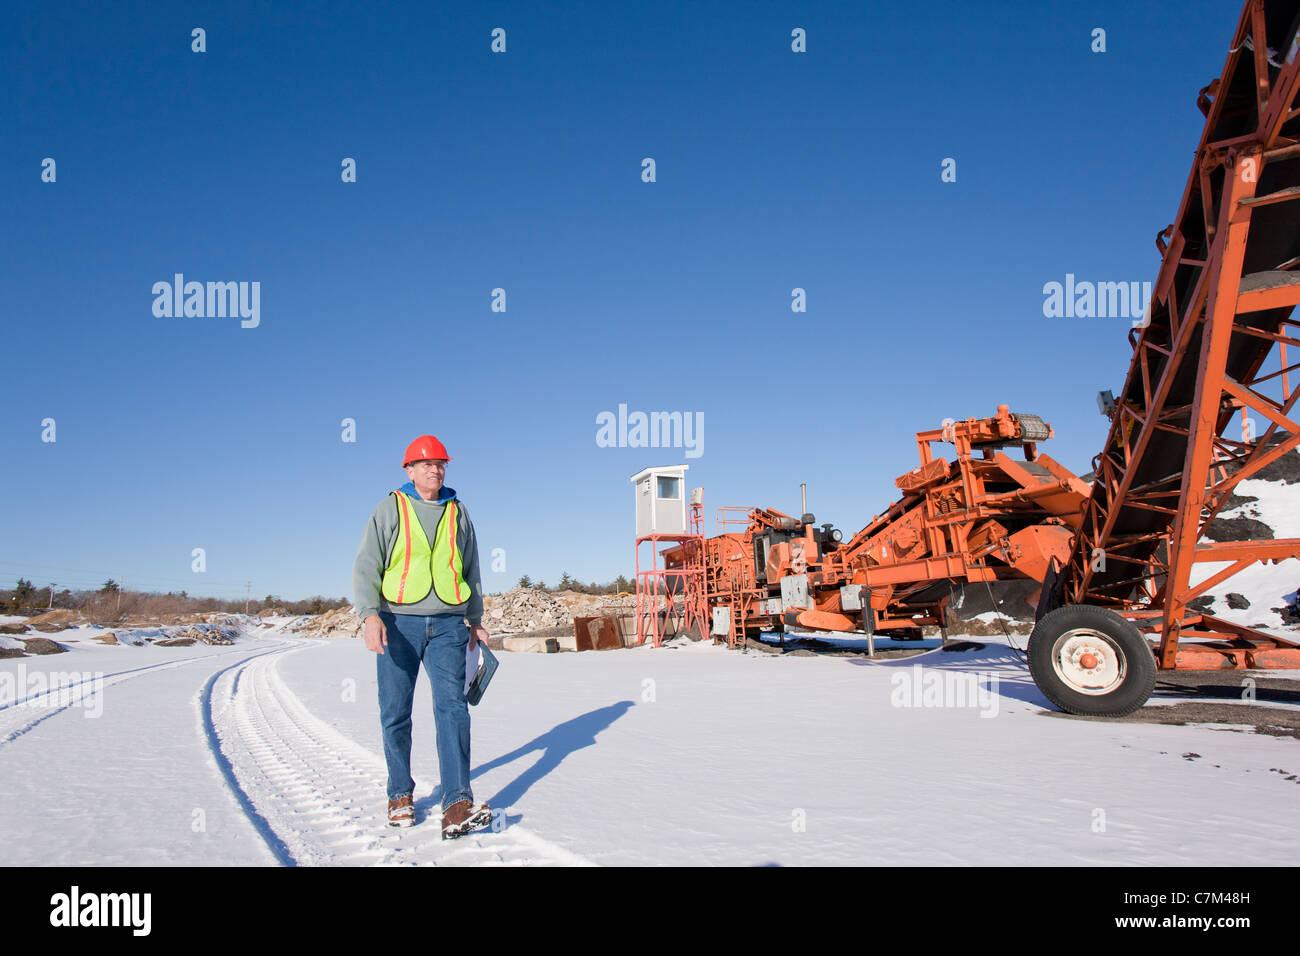 Engineer inspecting rock crusher at a construction site - Stock Image